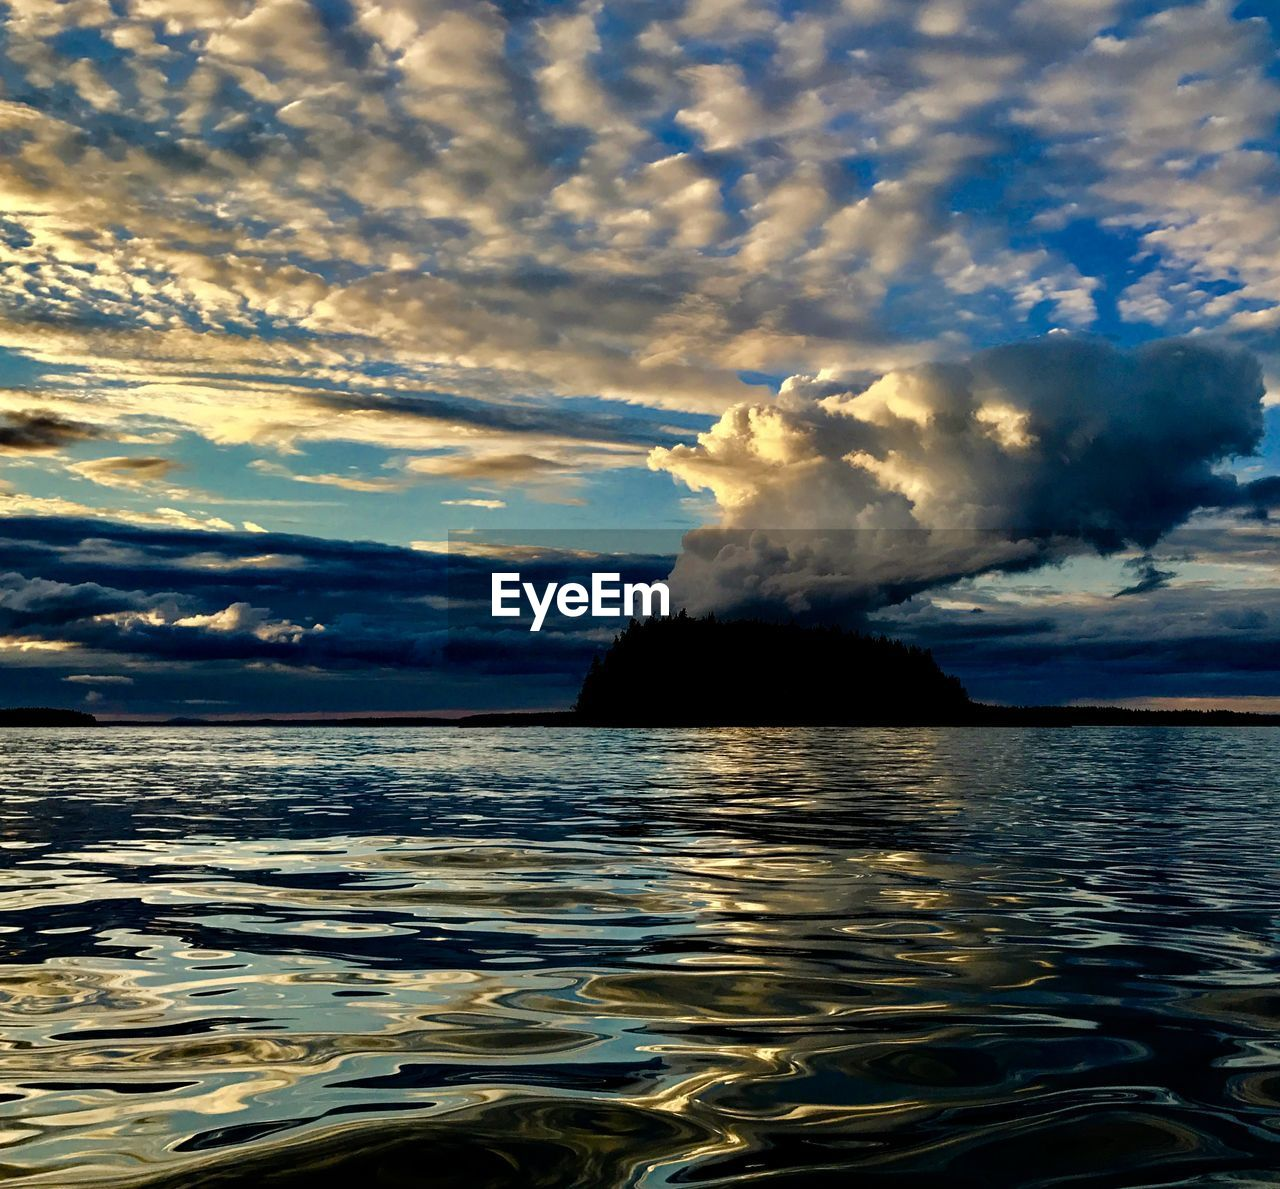 water, sky, sea, cloud - sky, beauty in nature, nature, scenics, waterfront, outdoors, tranquility, tranquil scene, no people, power in nature, horizon over water, day, sunset, wave, iceberg